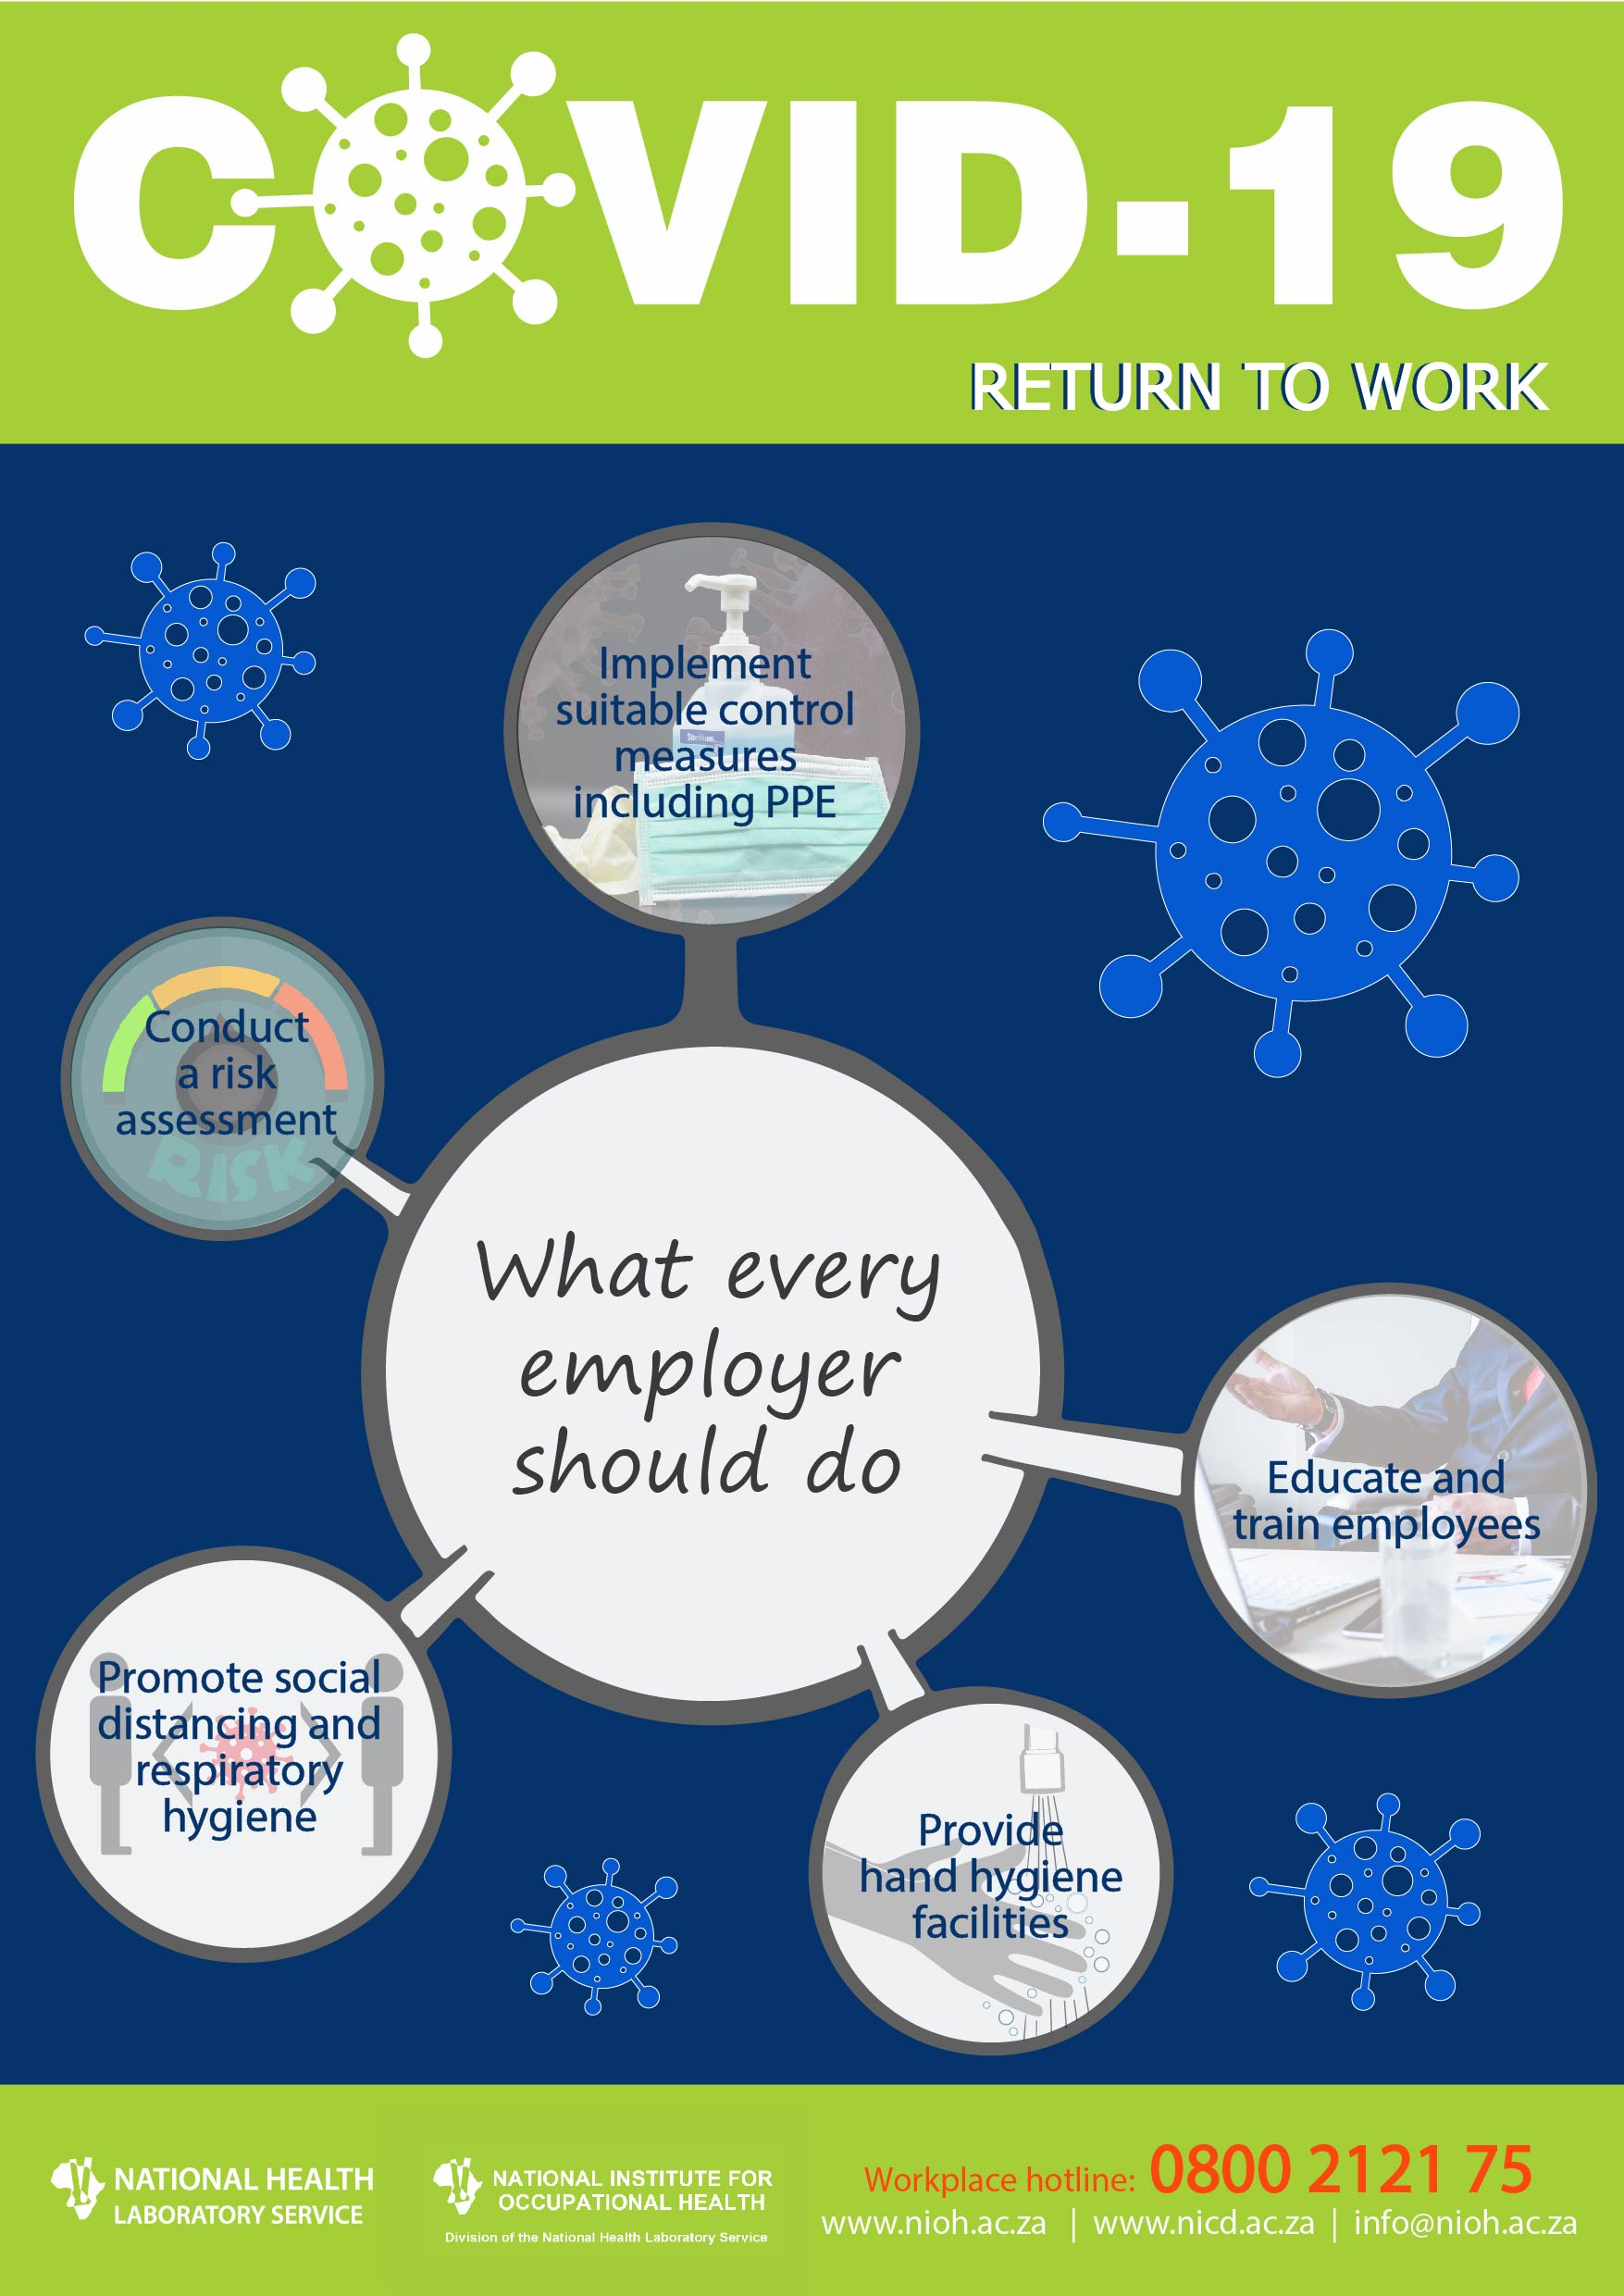 Return to Work - What every employer should do